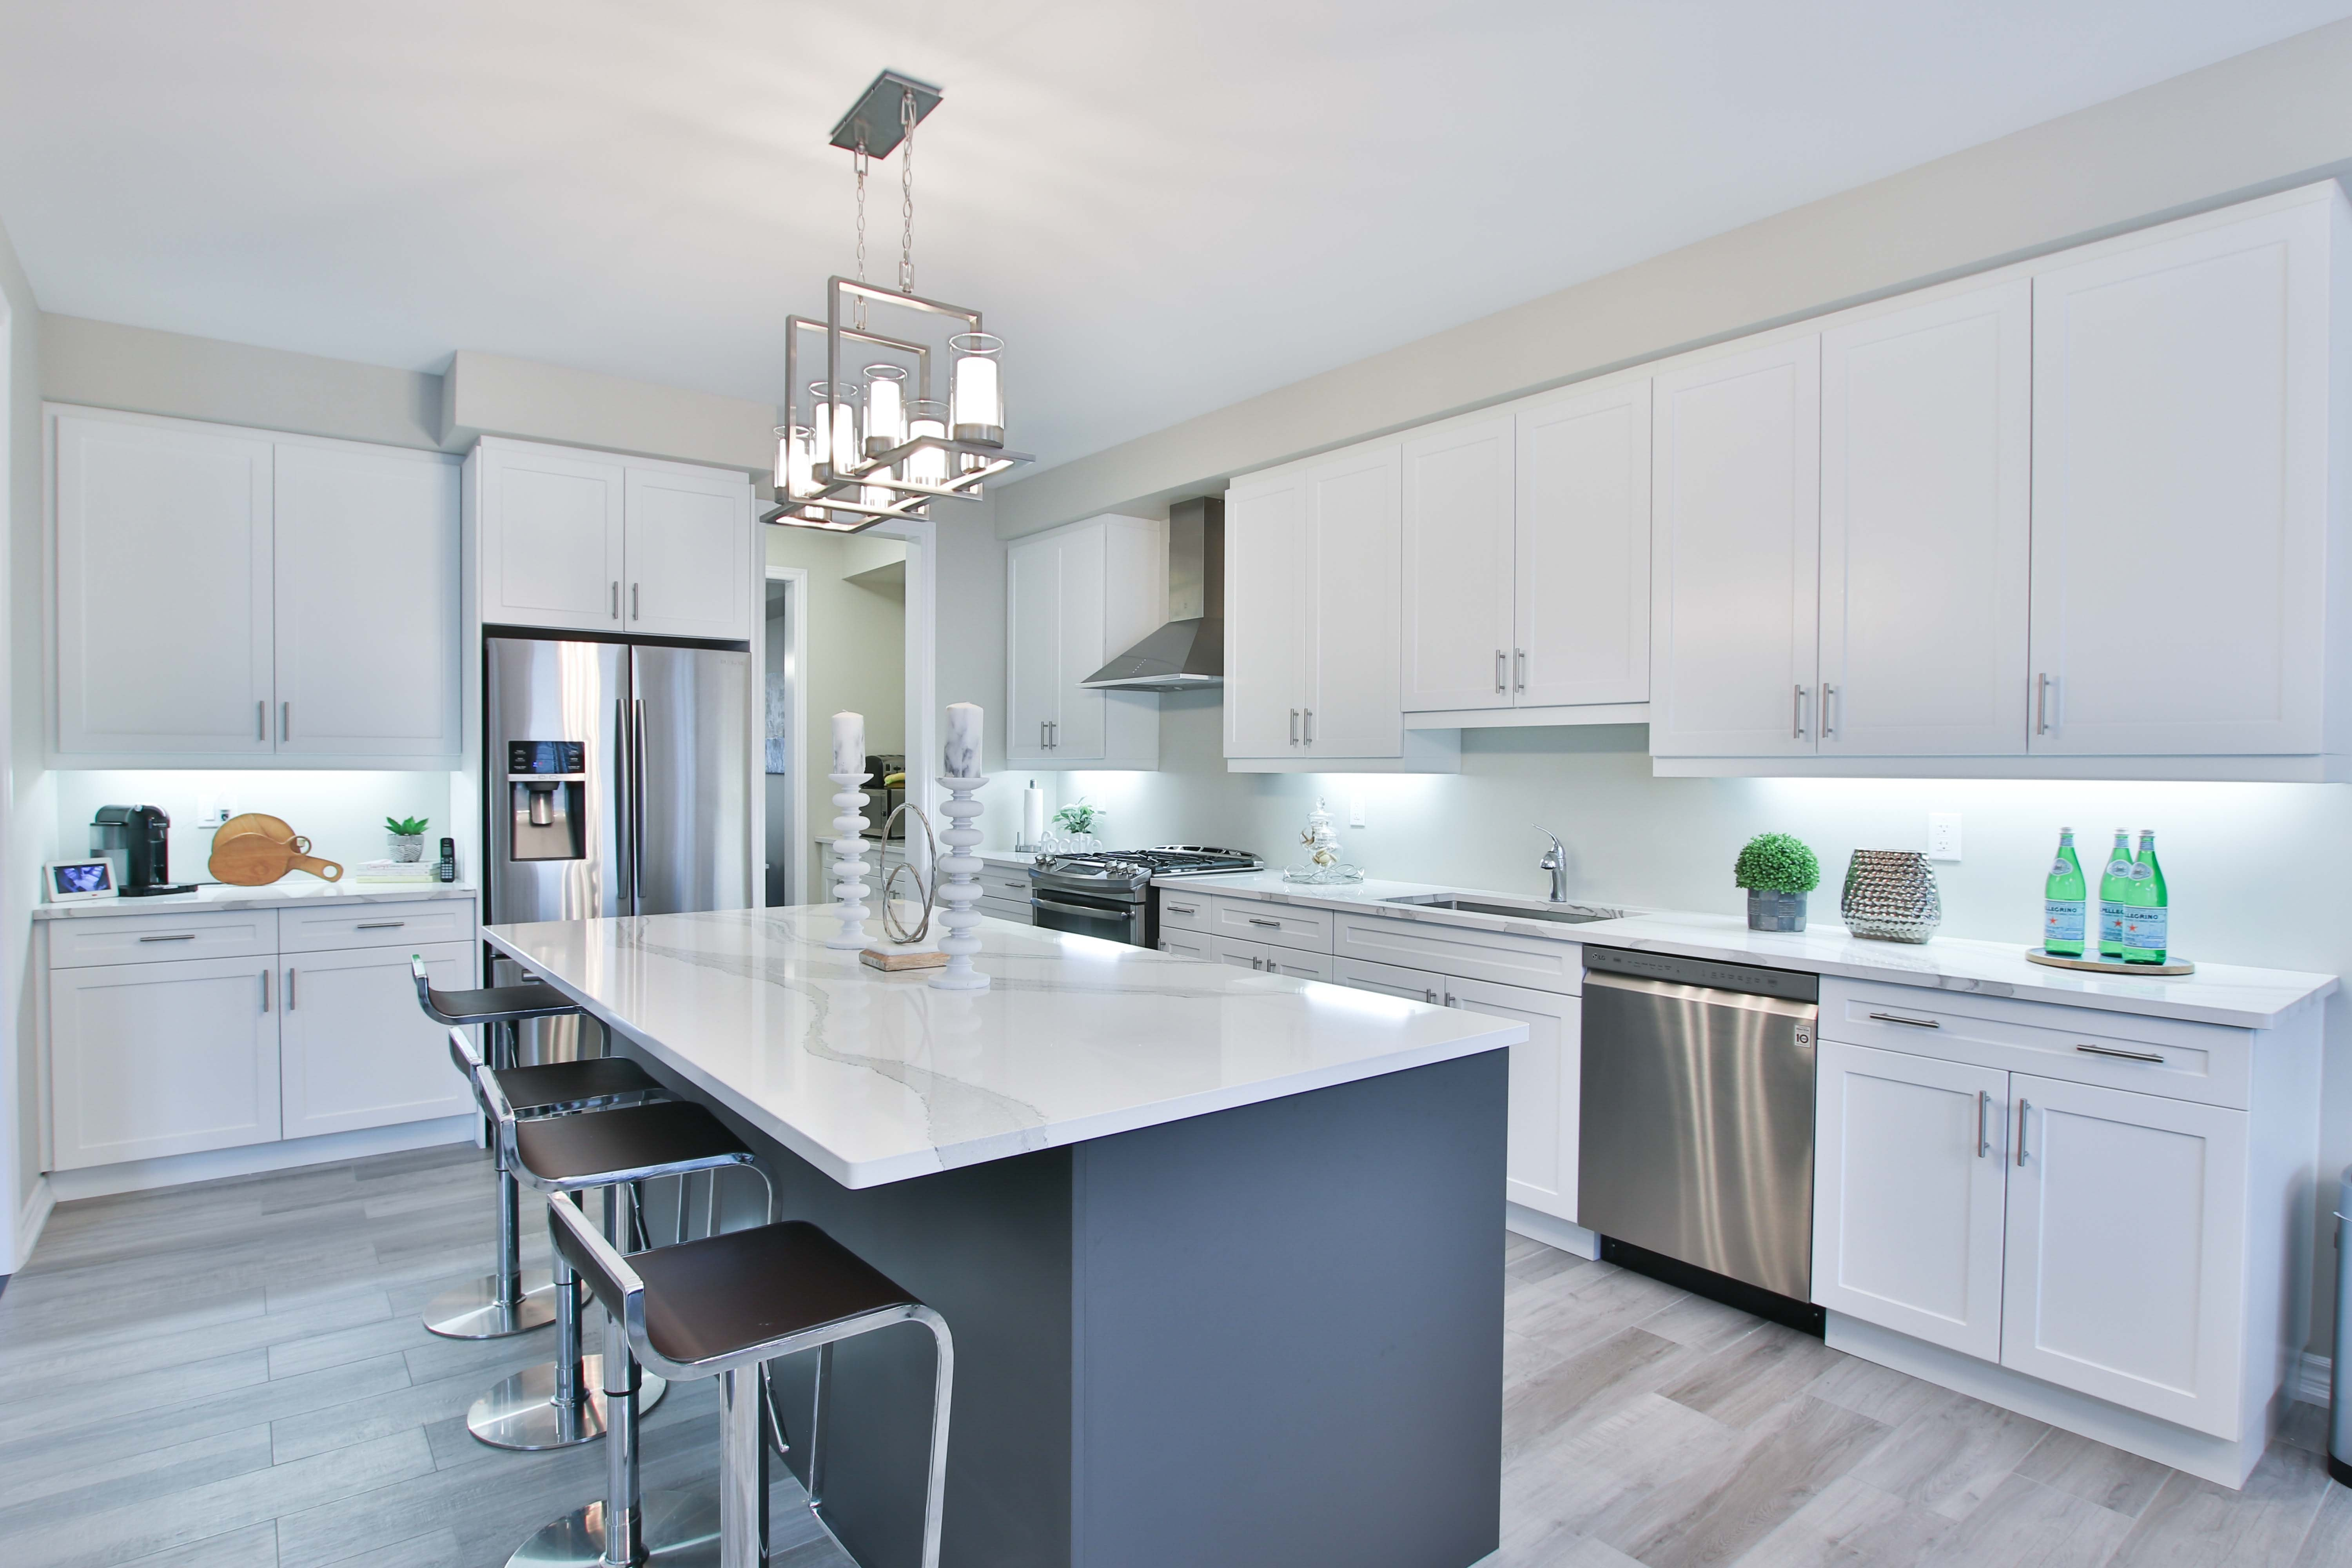 Designing The Perfect Kitchen Layout To Match Your Lifestyle Renovationfind Blog